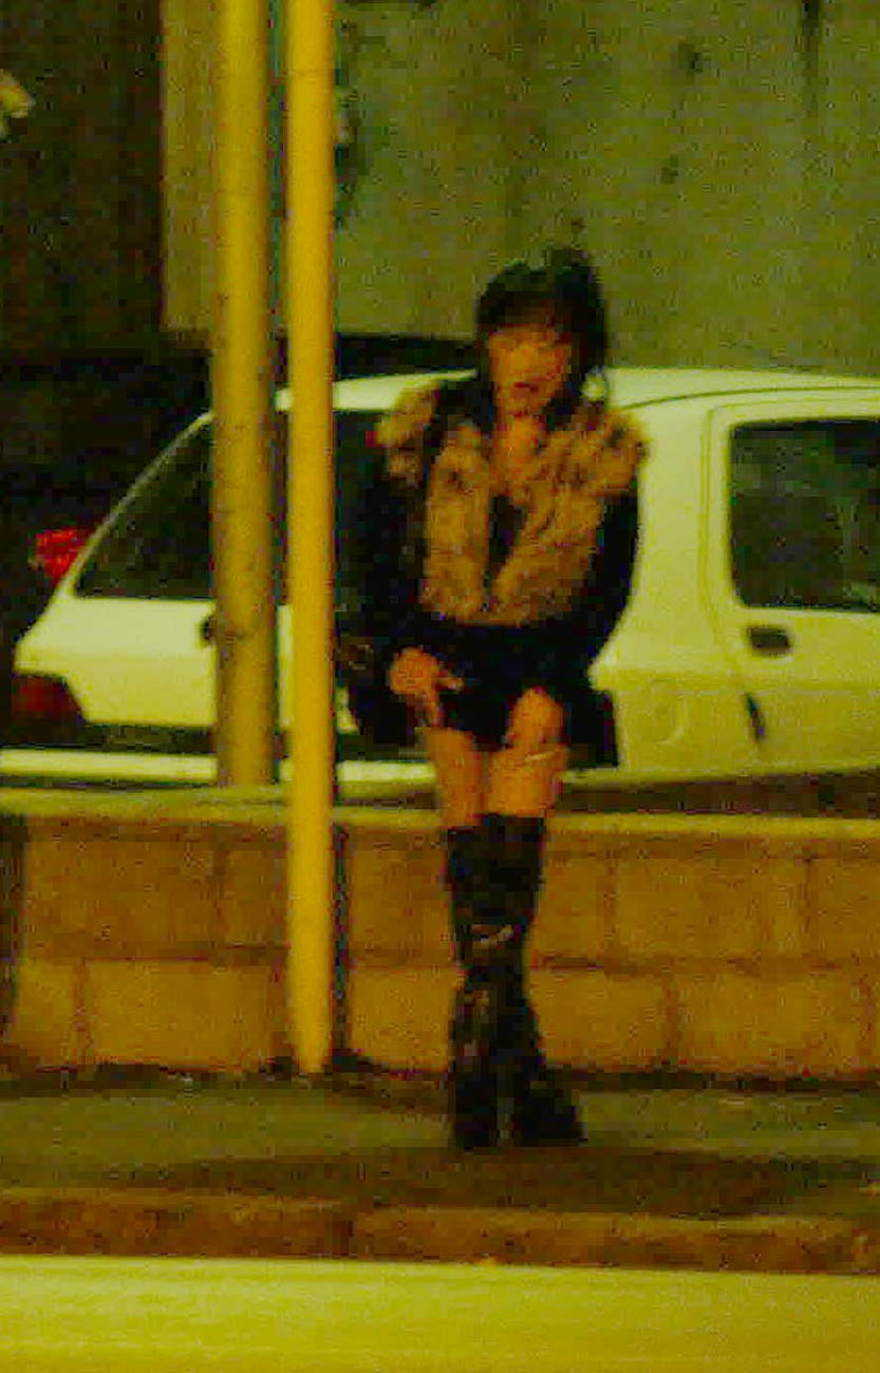 massaggi erotici in video foto prostitute strada